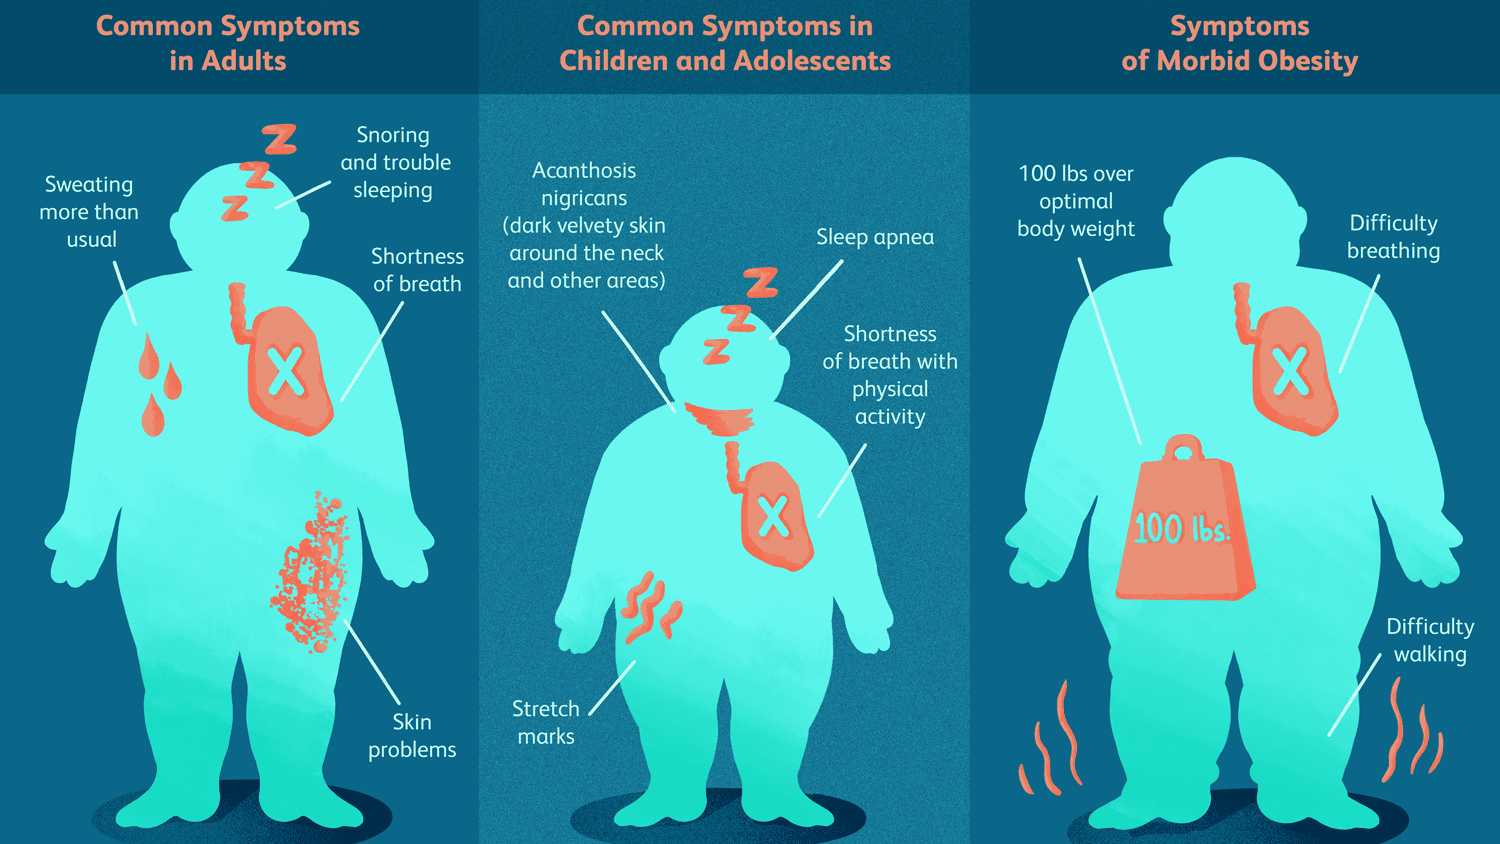 Obesity Signs, Symptoms, and Complications